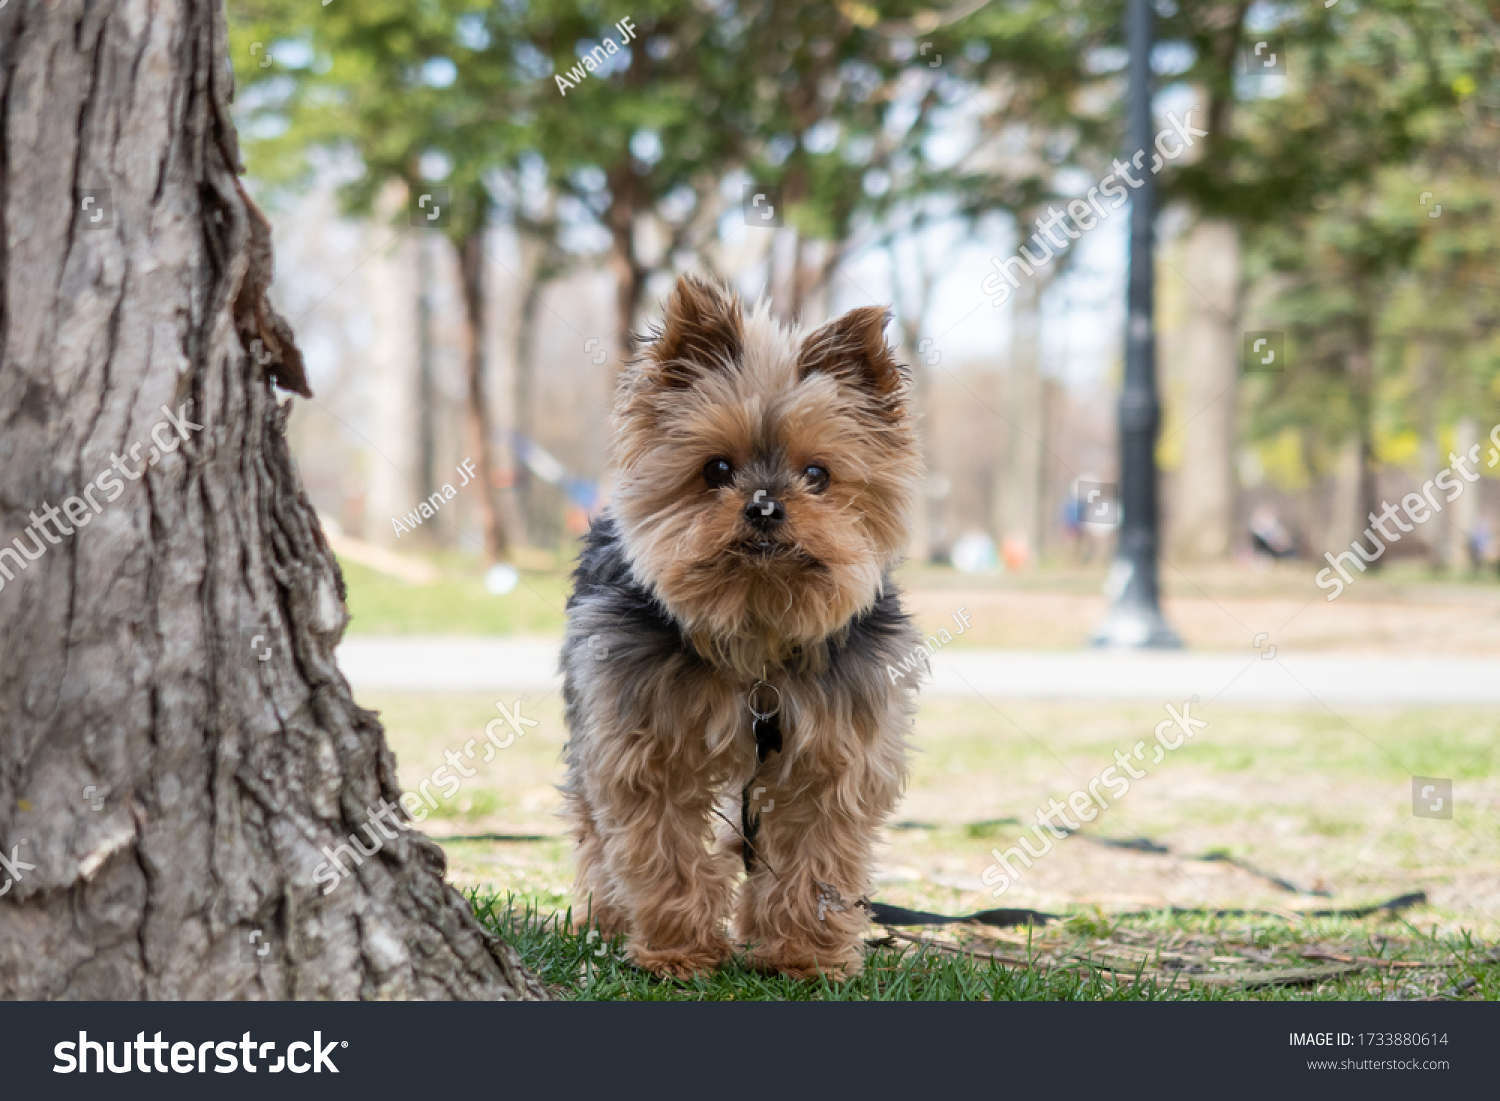 stock-photo-cute-little-yorkshire-terrie